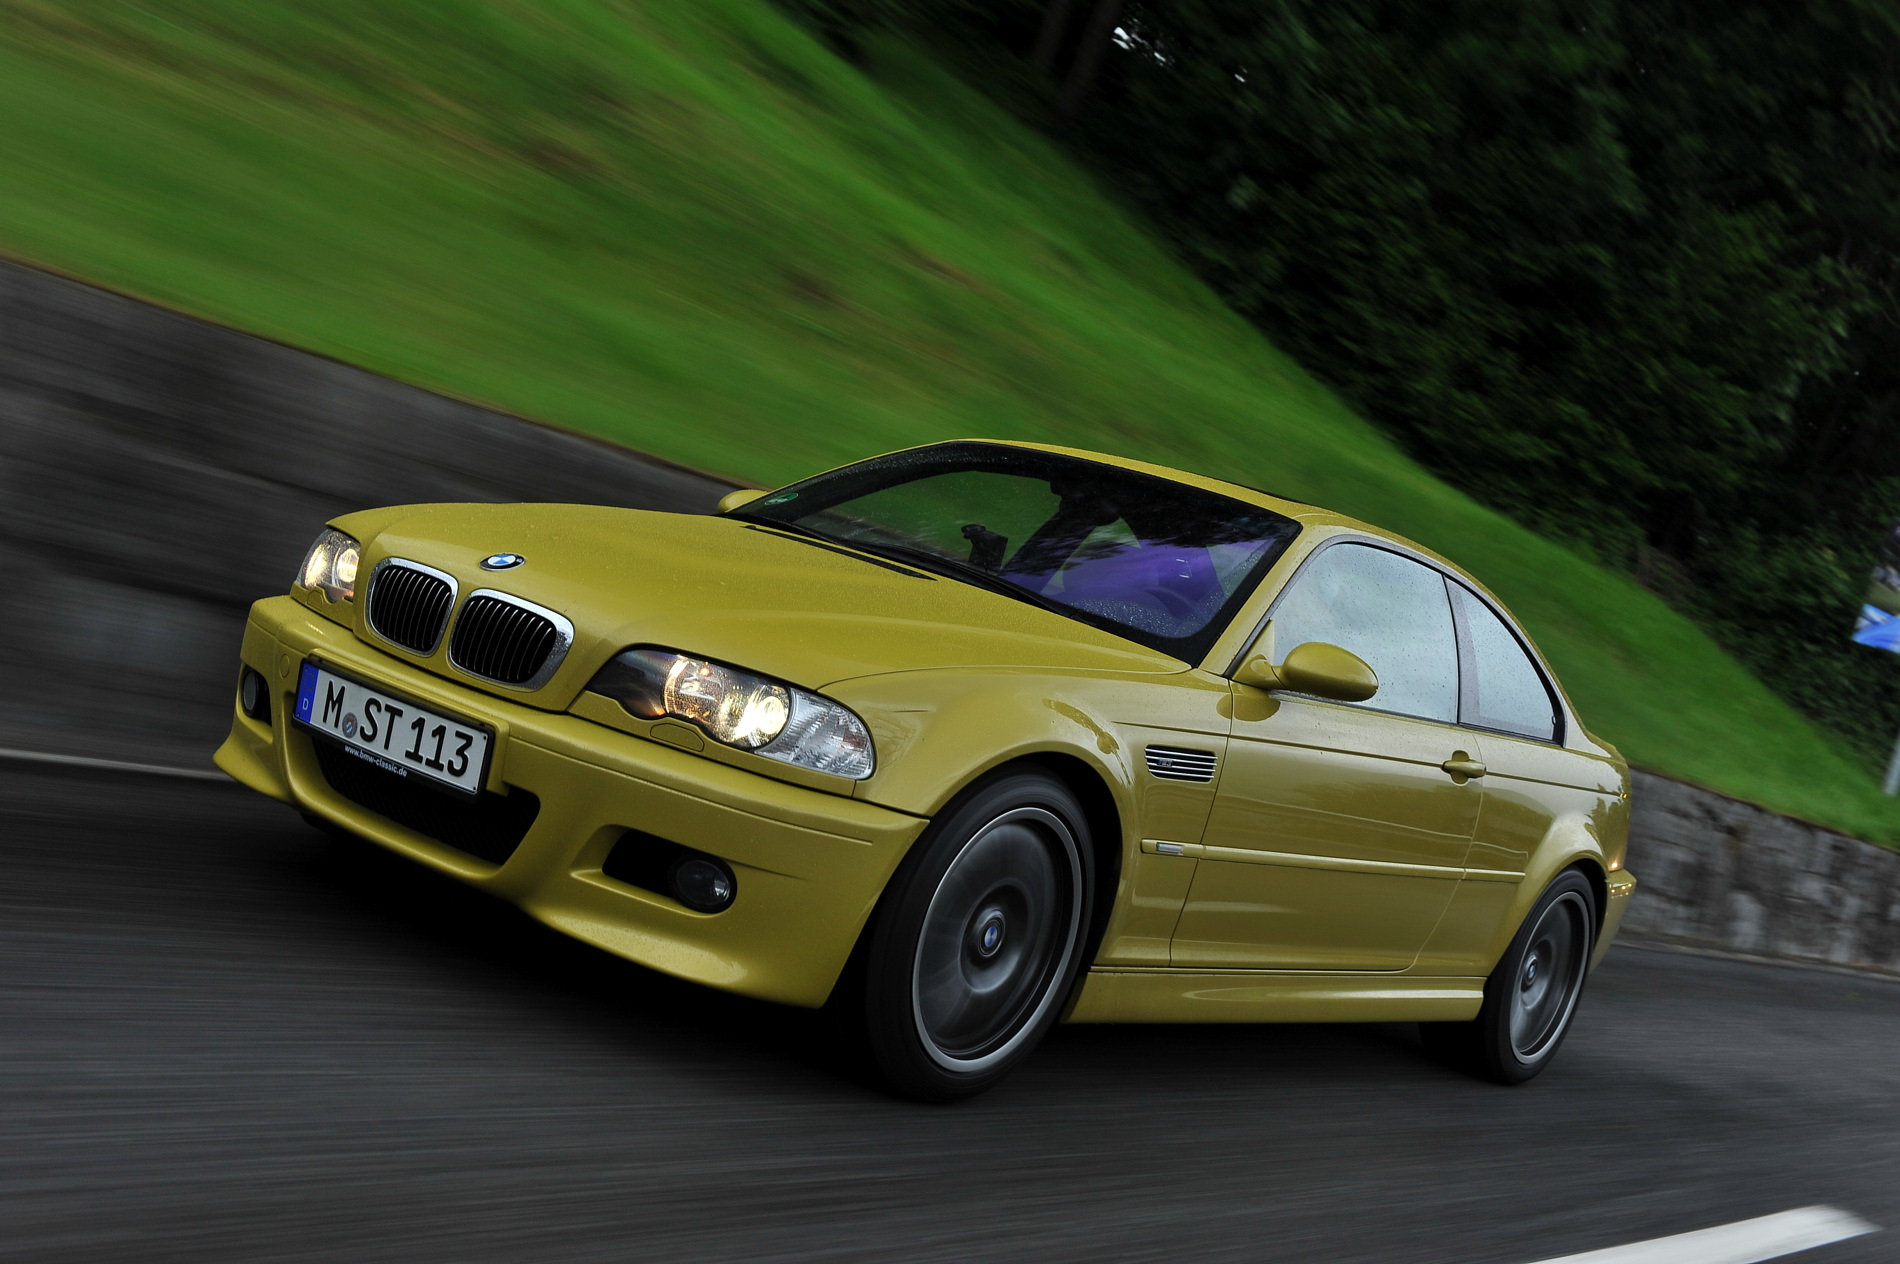 VIDEO: What makes the E46 BMW M3 so great?